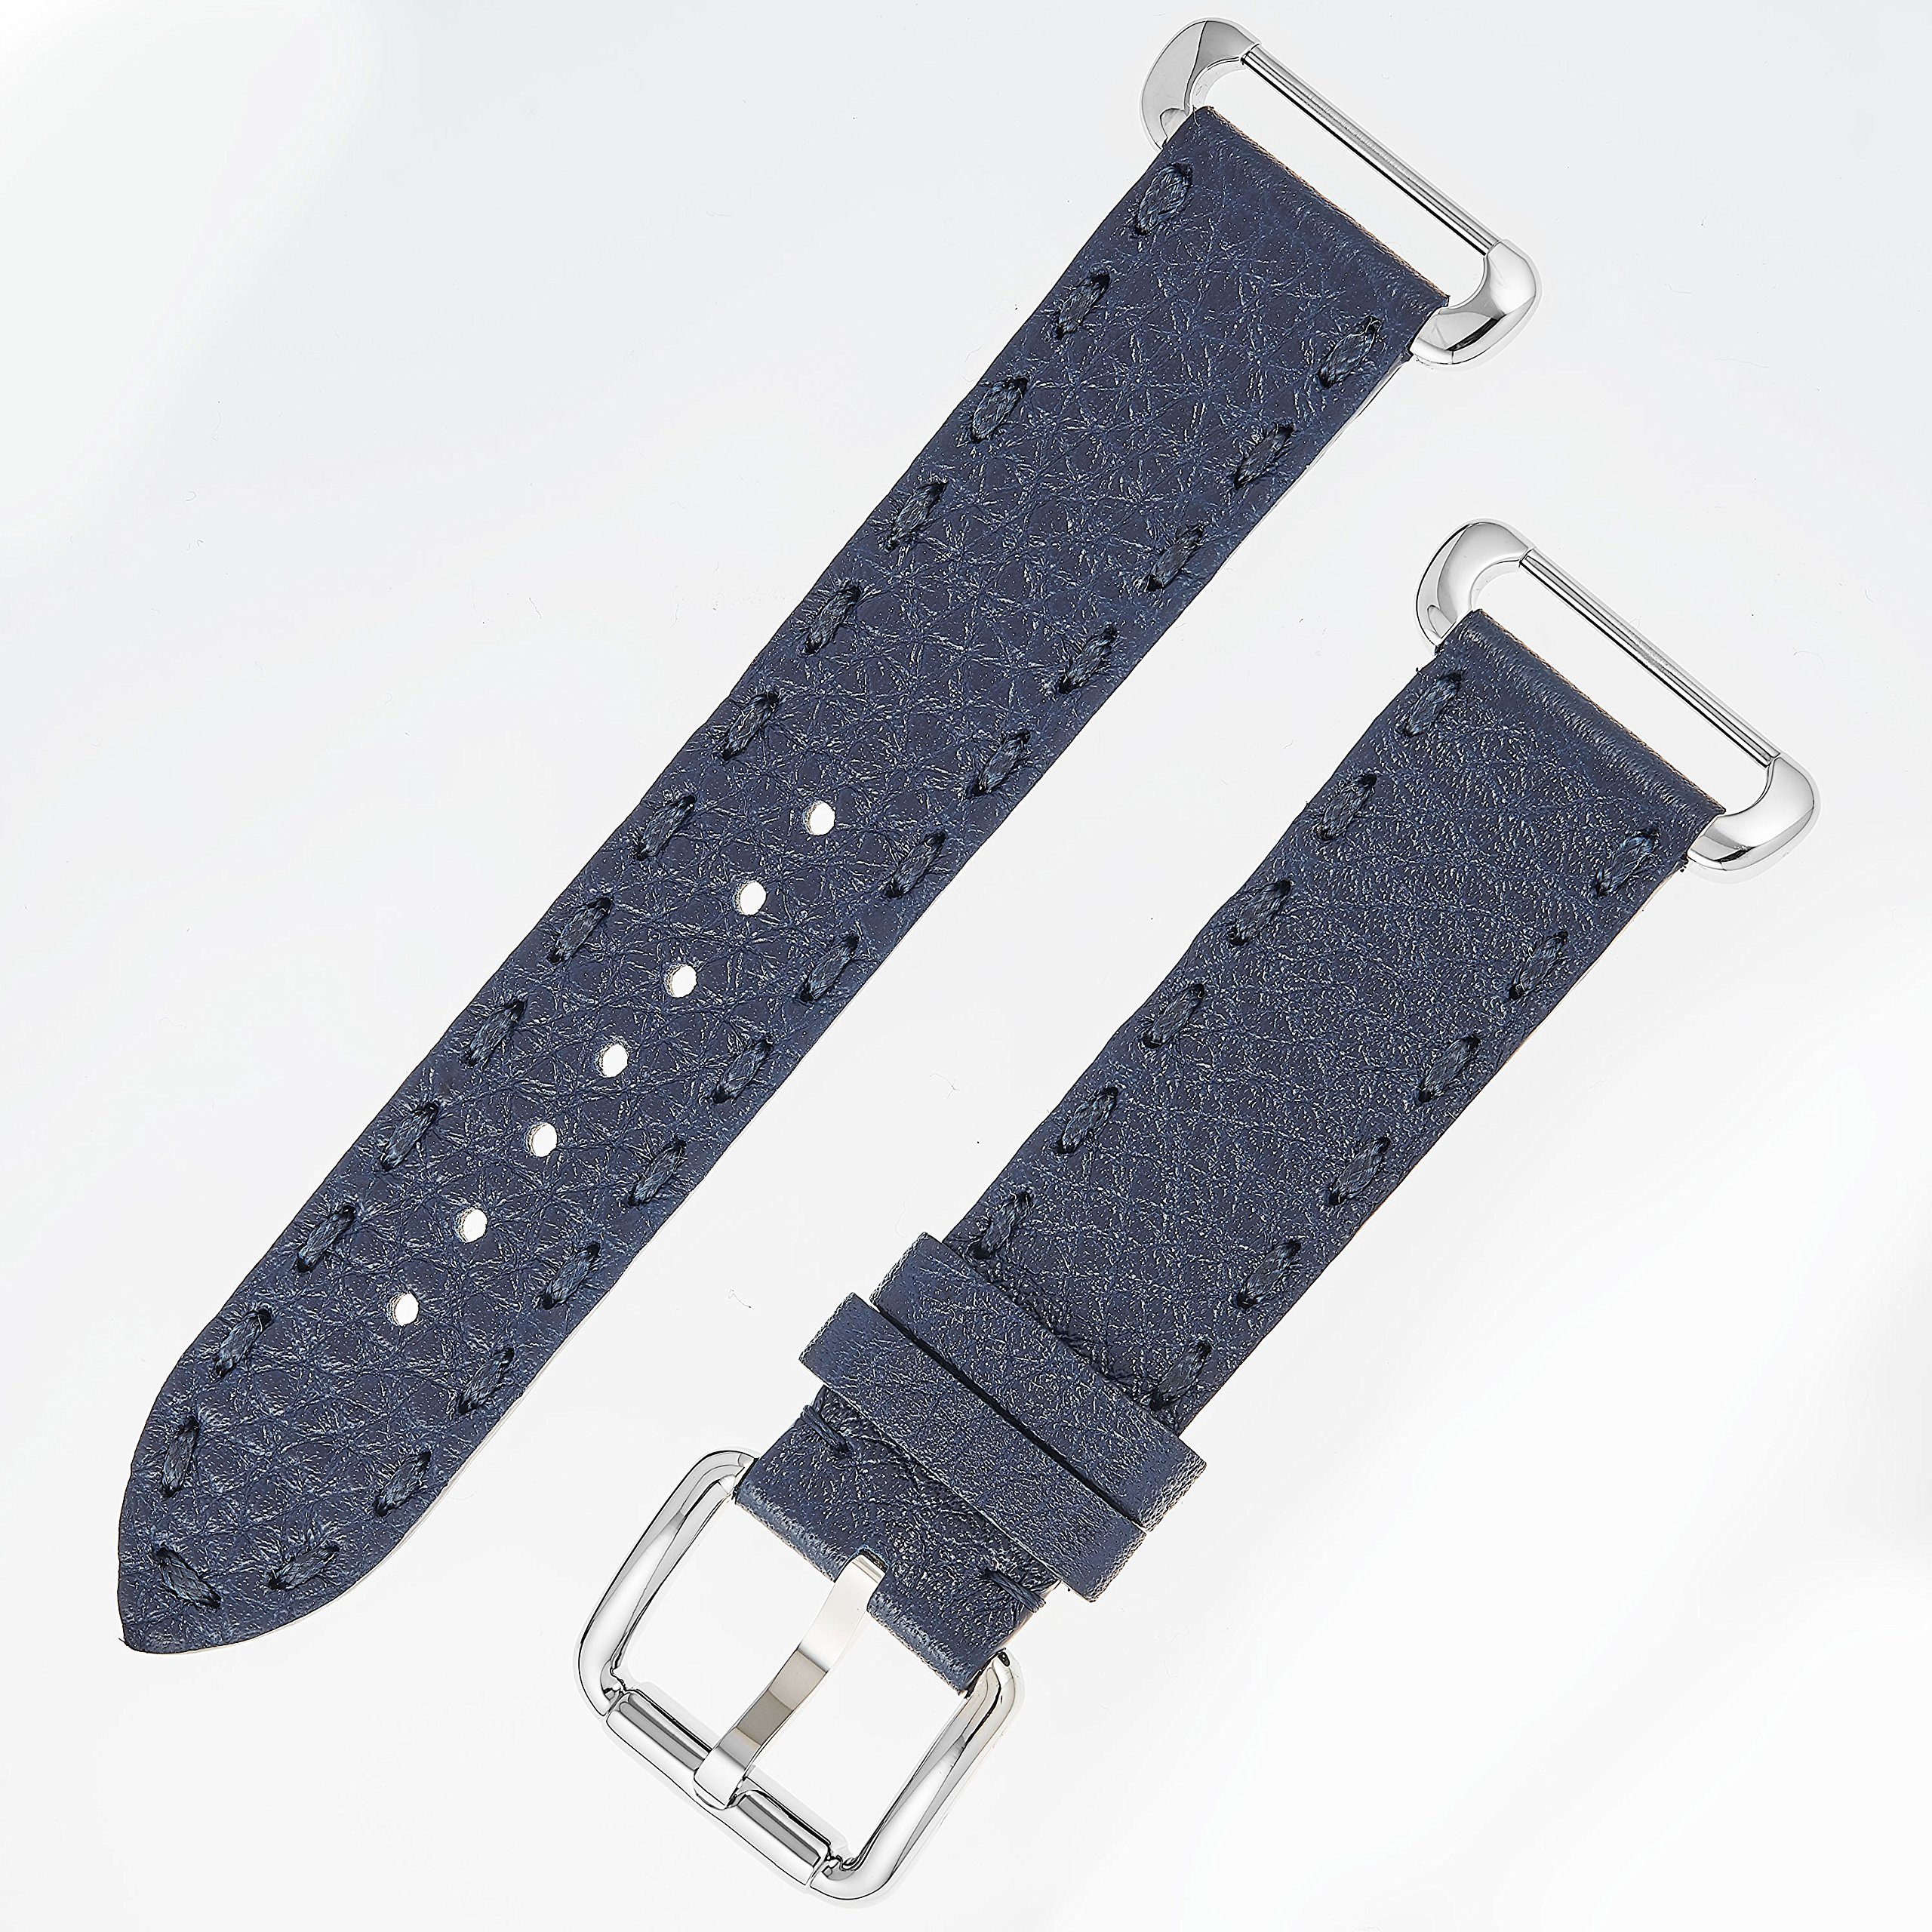 Fendi Selleria Interchangeable Replacement Watch Band - 18mm Dark Blue Calfskin Leather Strap with Pin Buckle SSN18R03S